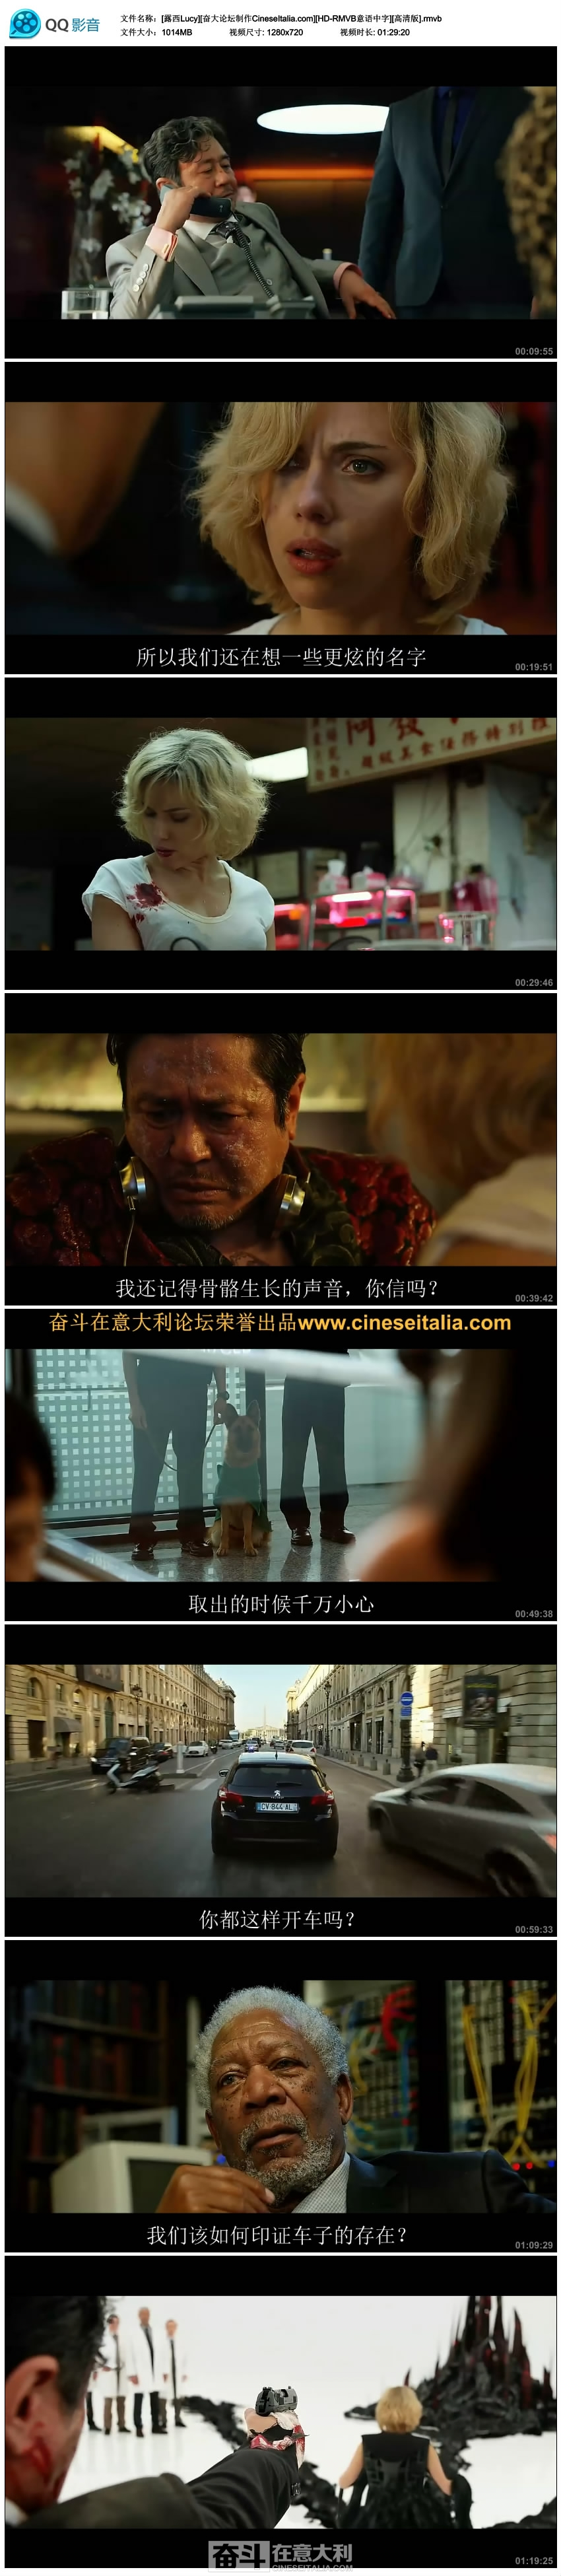 [露西Lucy][奋大论坛制作CineseItalia.com][HD-RMVB意语中字][高清版].rmvb_thumbs_2015.01.18.11_48_30.jpg